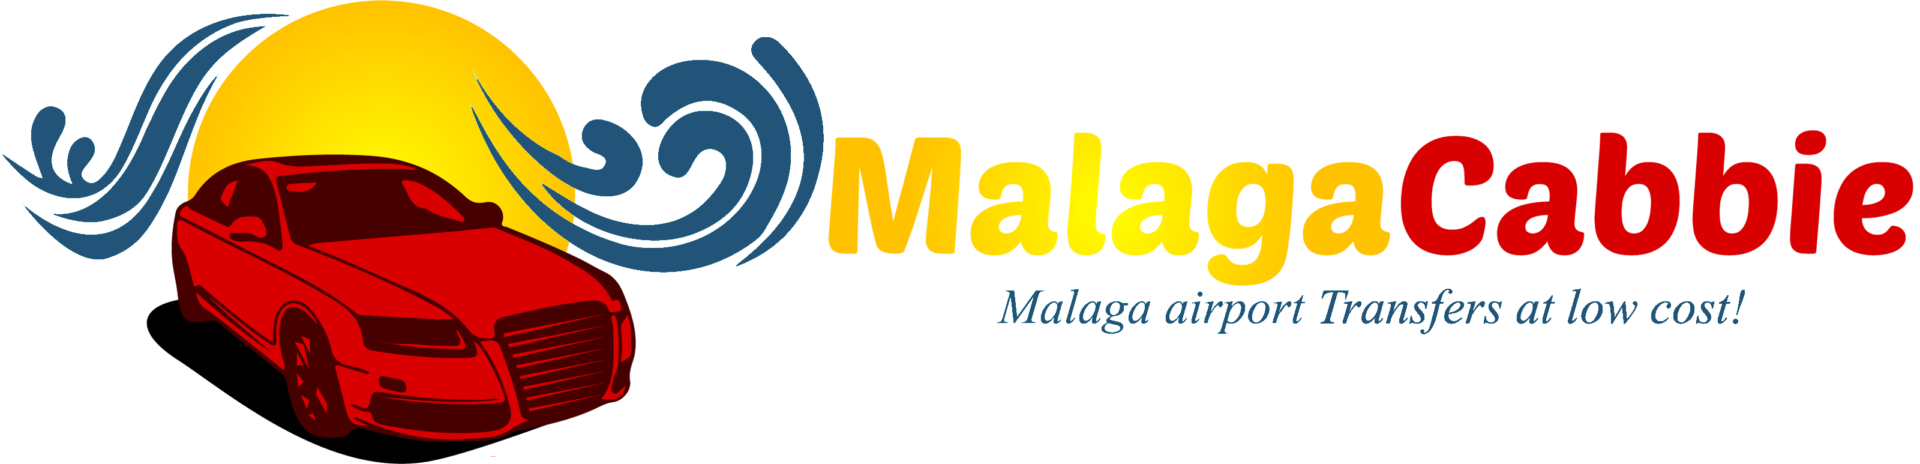 Malaga Cabbie | Malaga Cabbie Airport Transfers - Privacy Policy